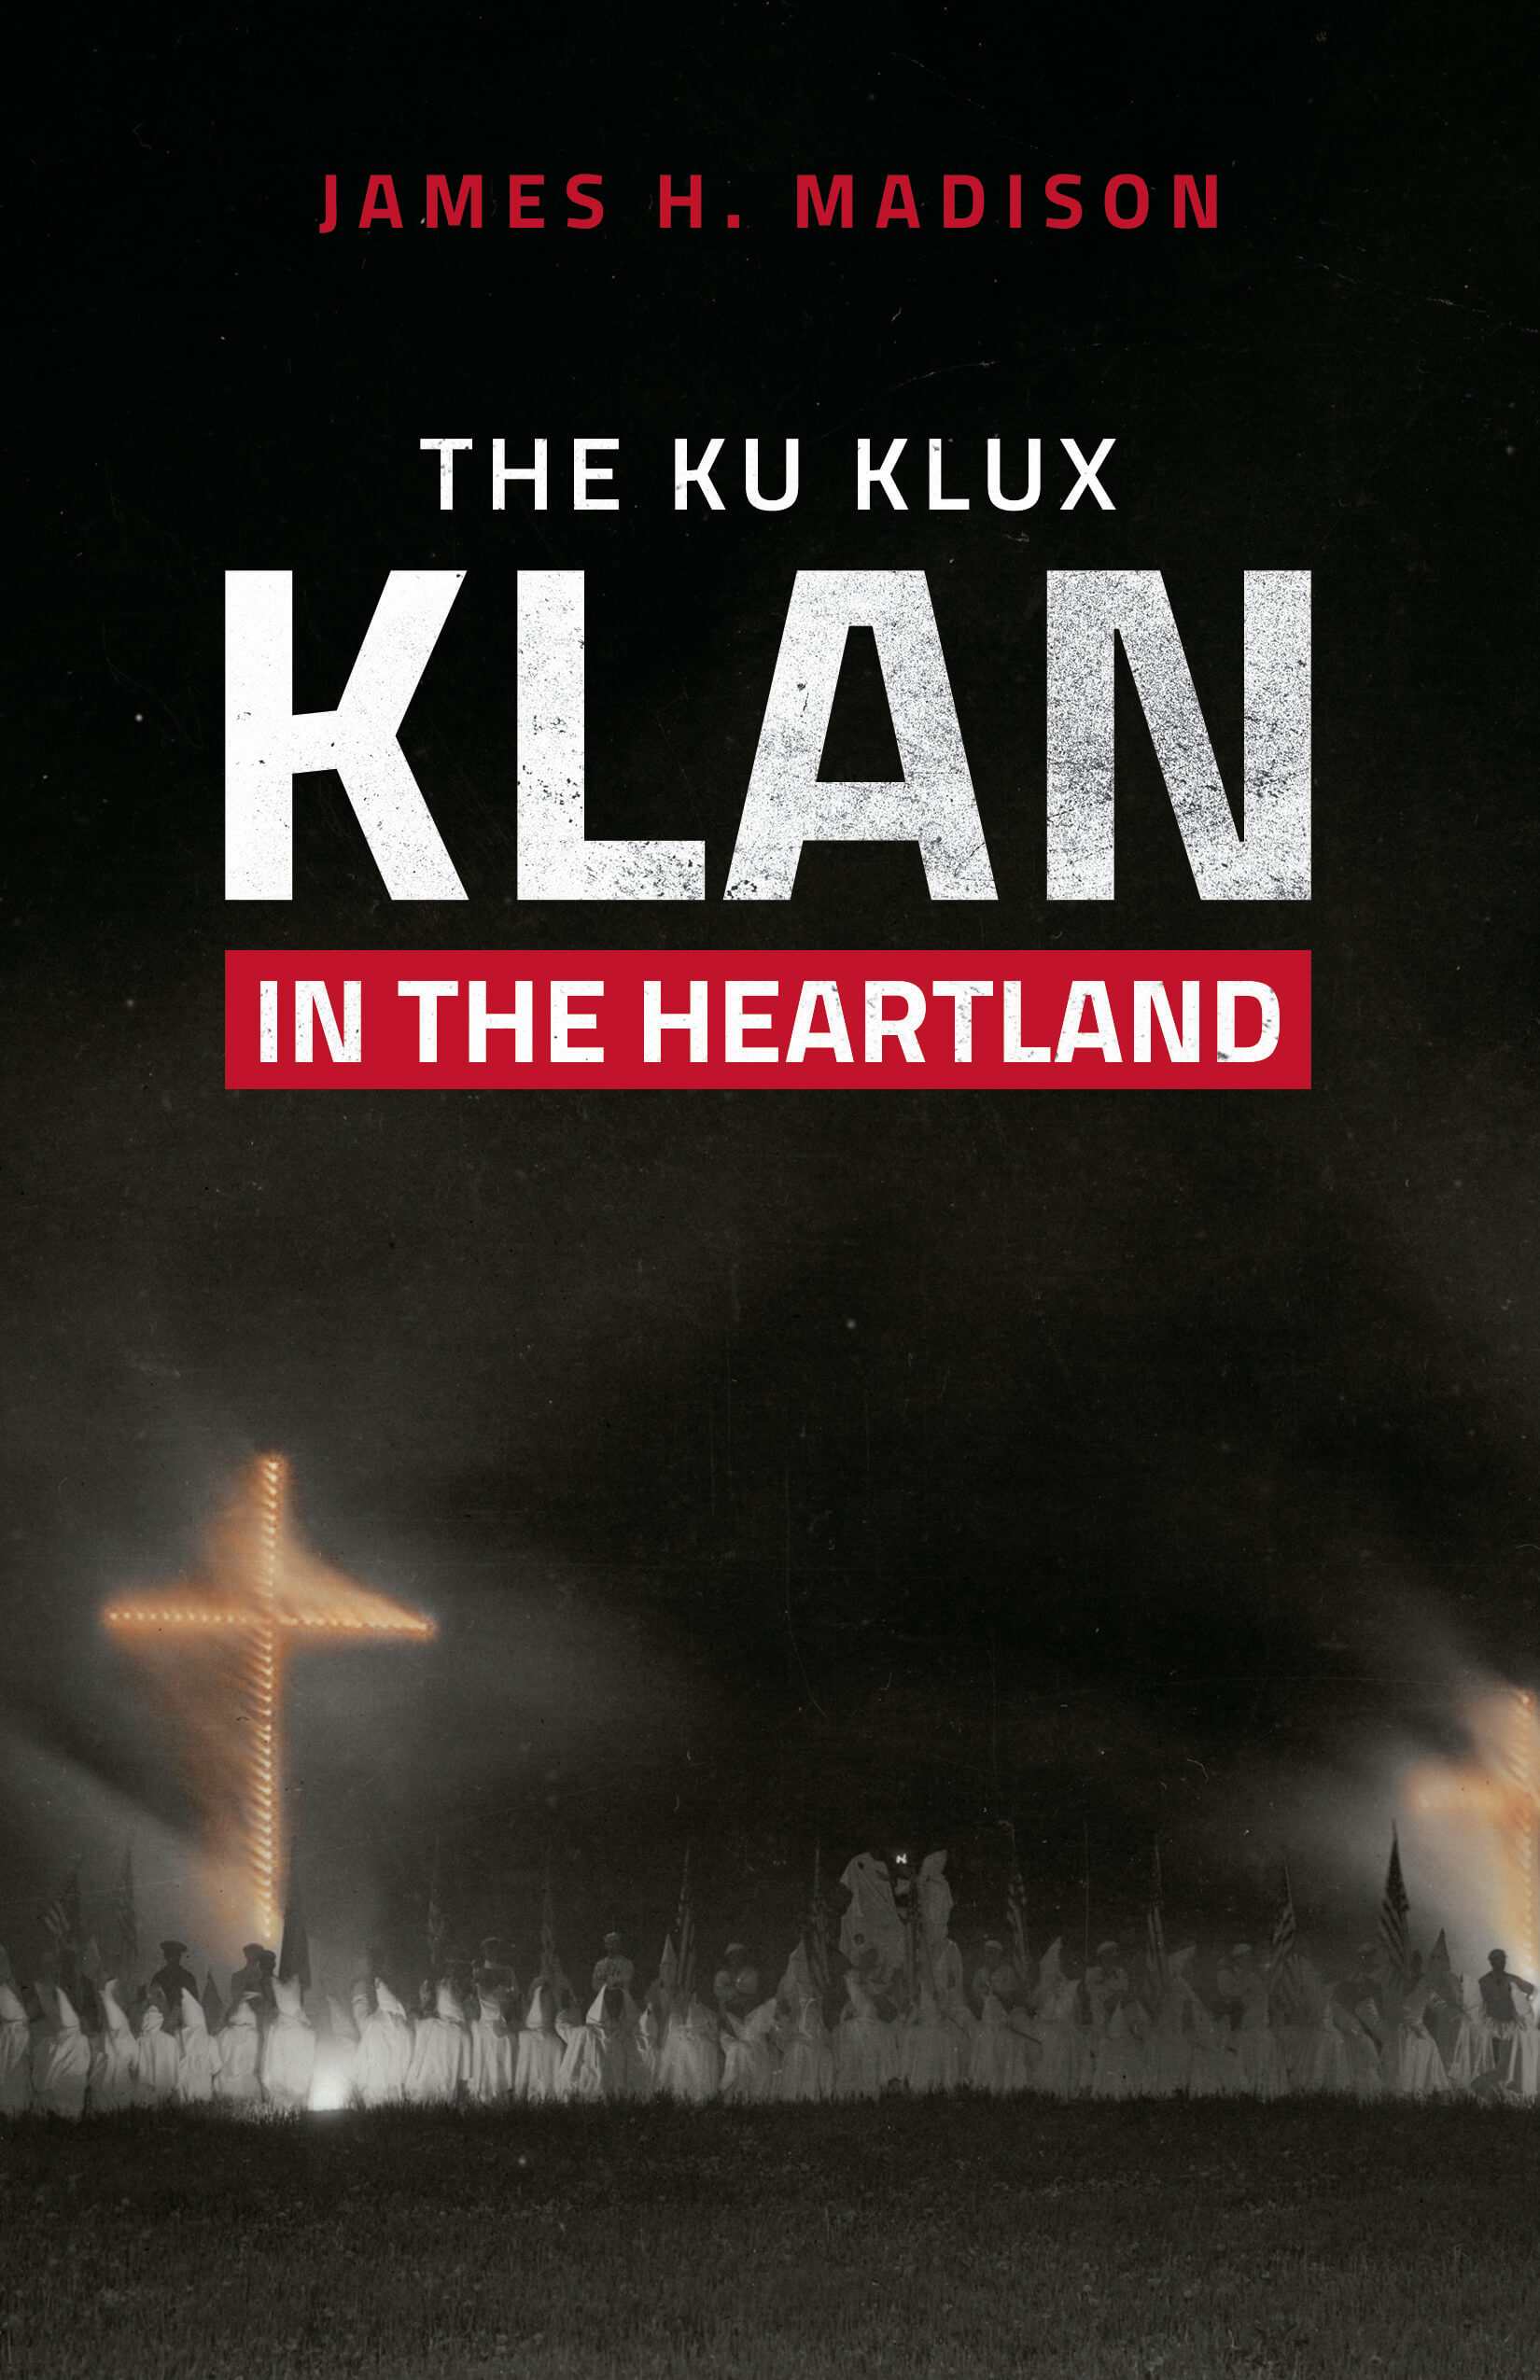 The Ku Klux Klan in the Heartland by James H. Madison